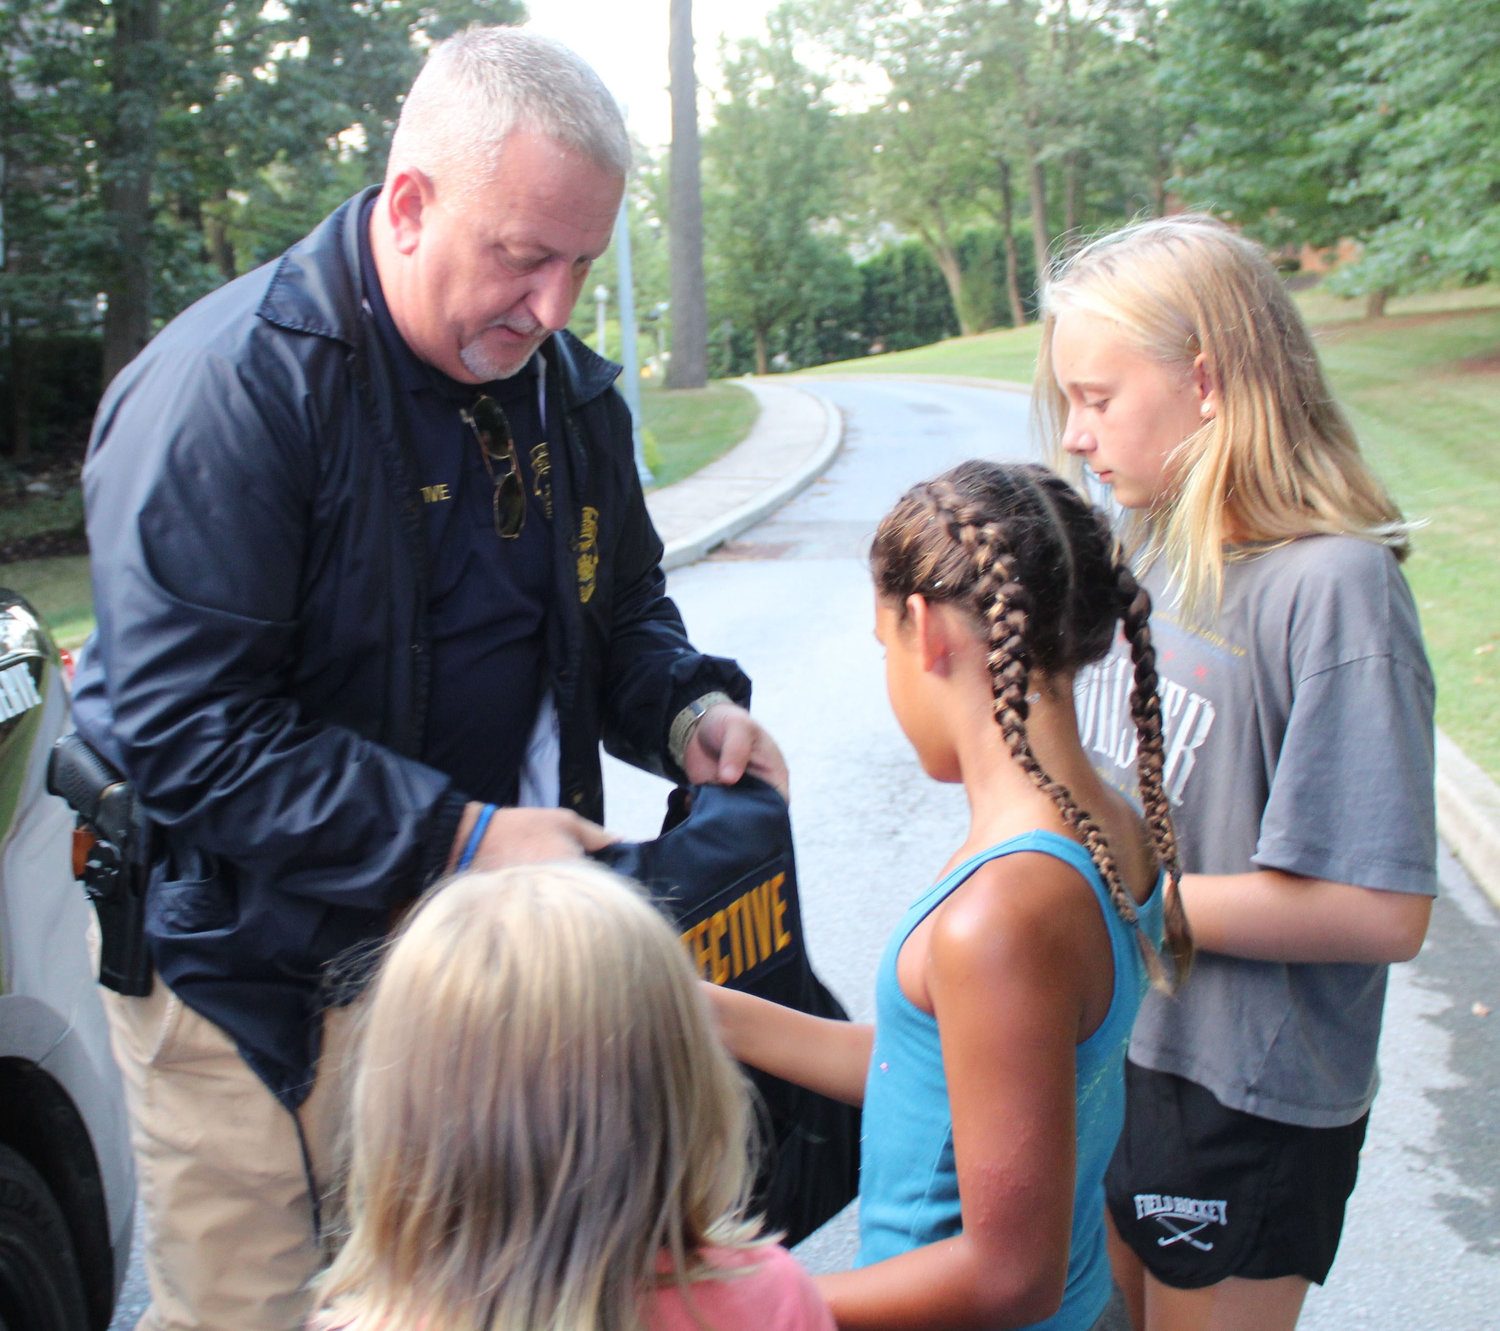 Detective Bob Appleby let kids hold his vest during National Night Out in Lower Swatara on Aug. 6.